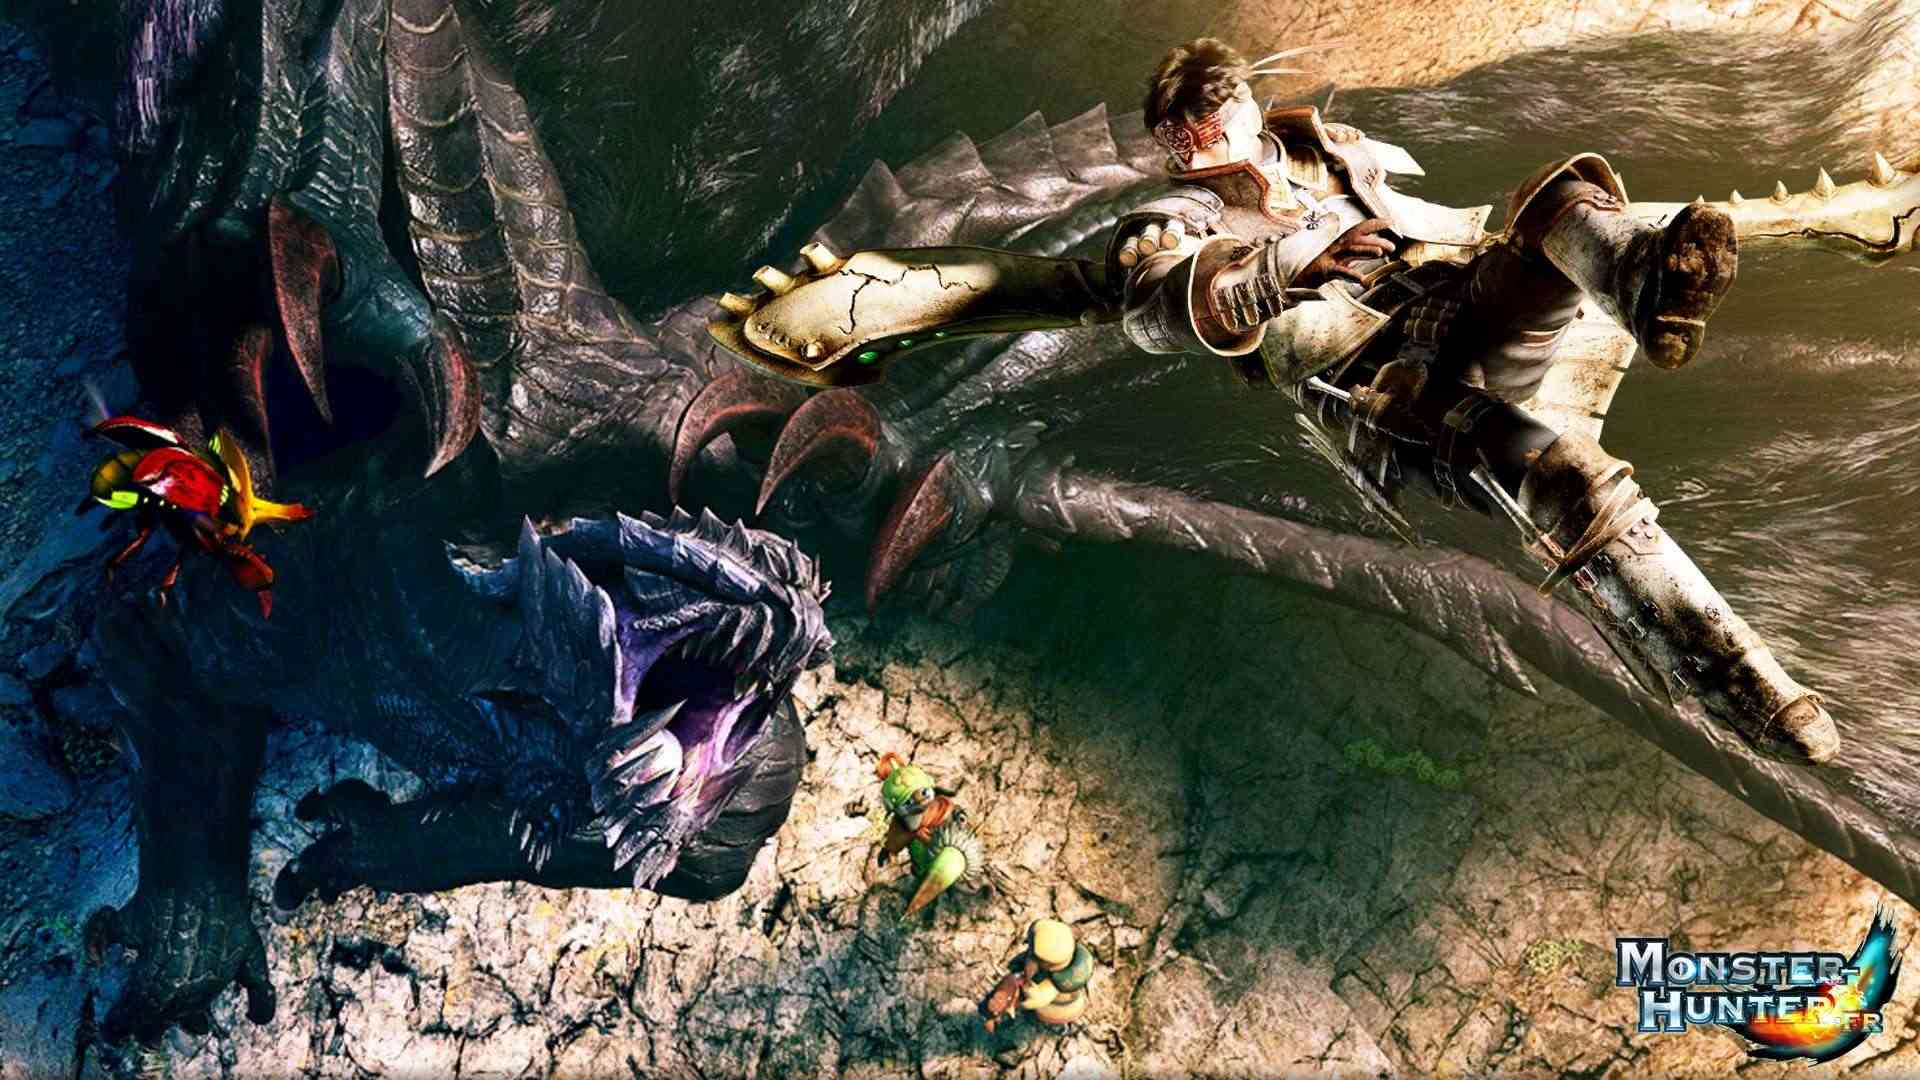 monster hunter.fr] les wallpapers de la semaine